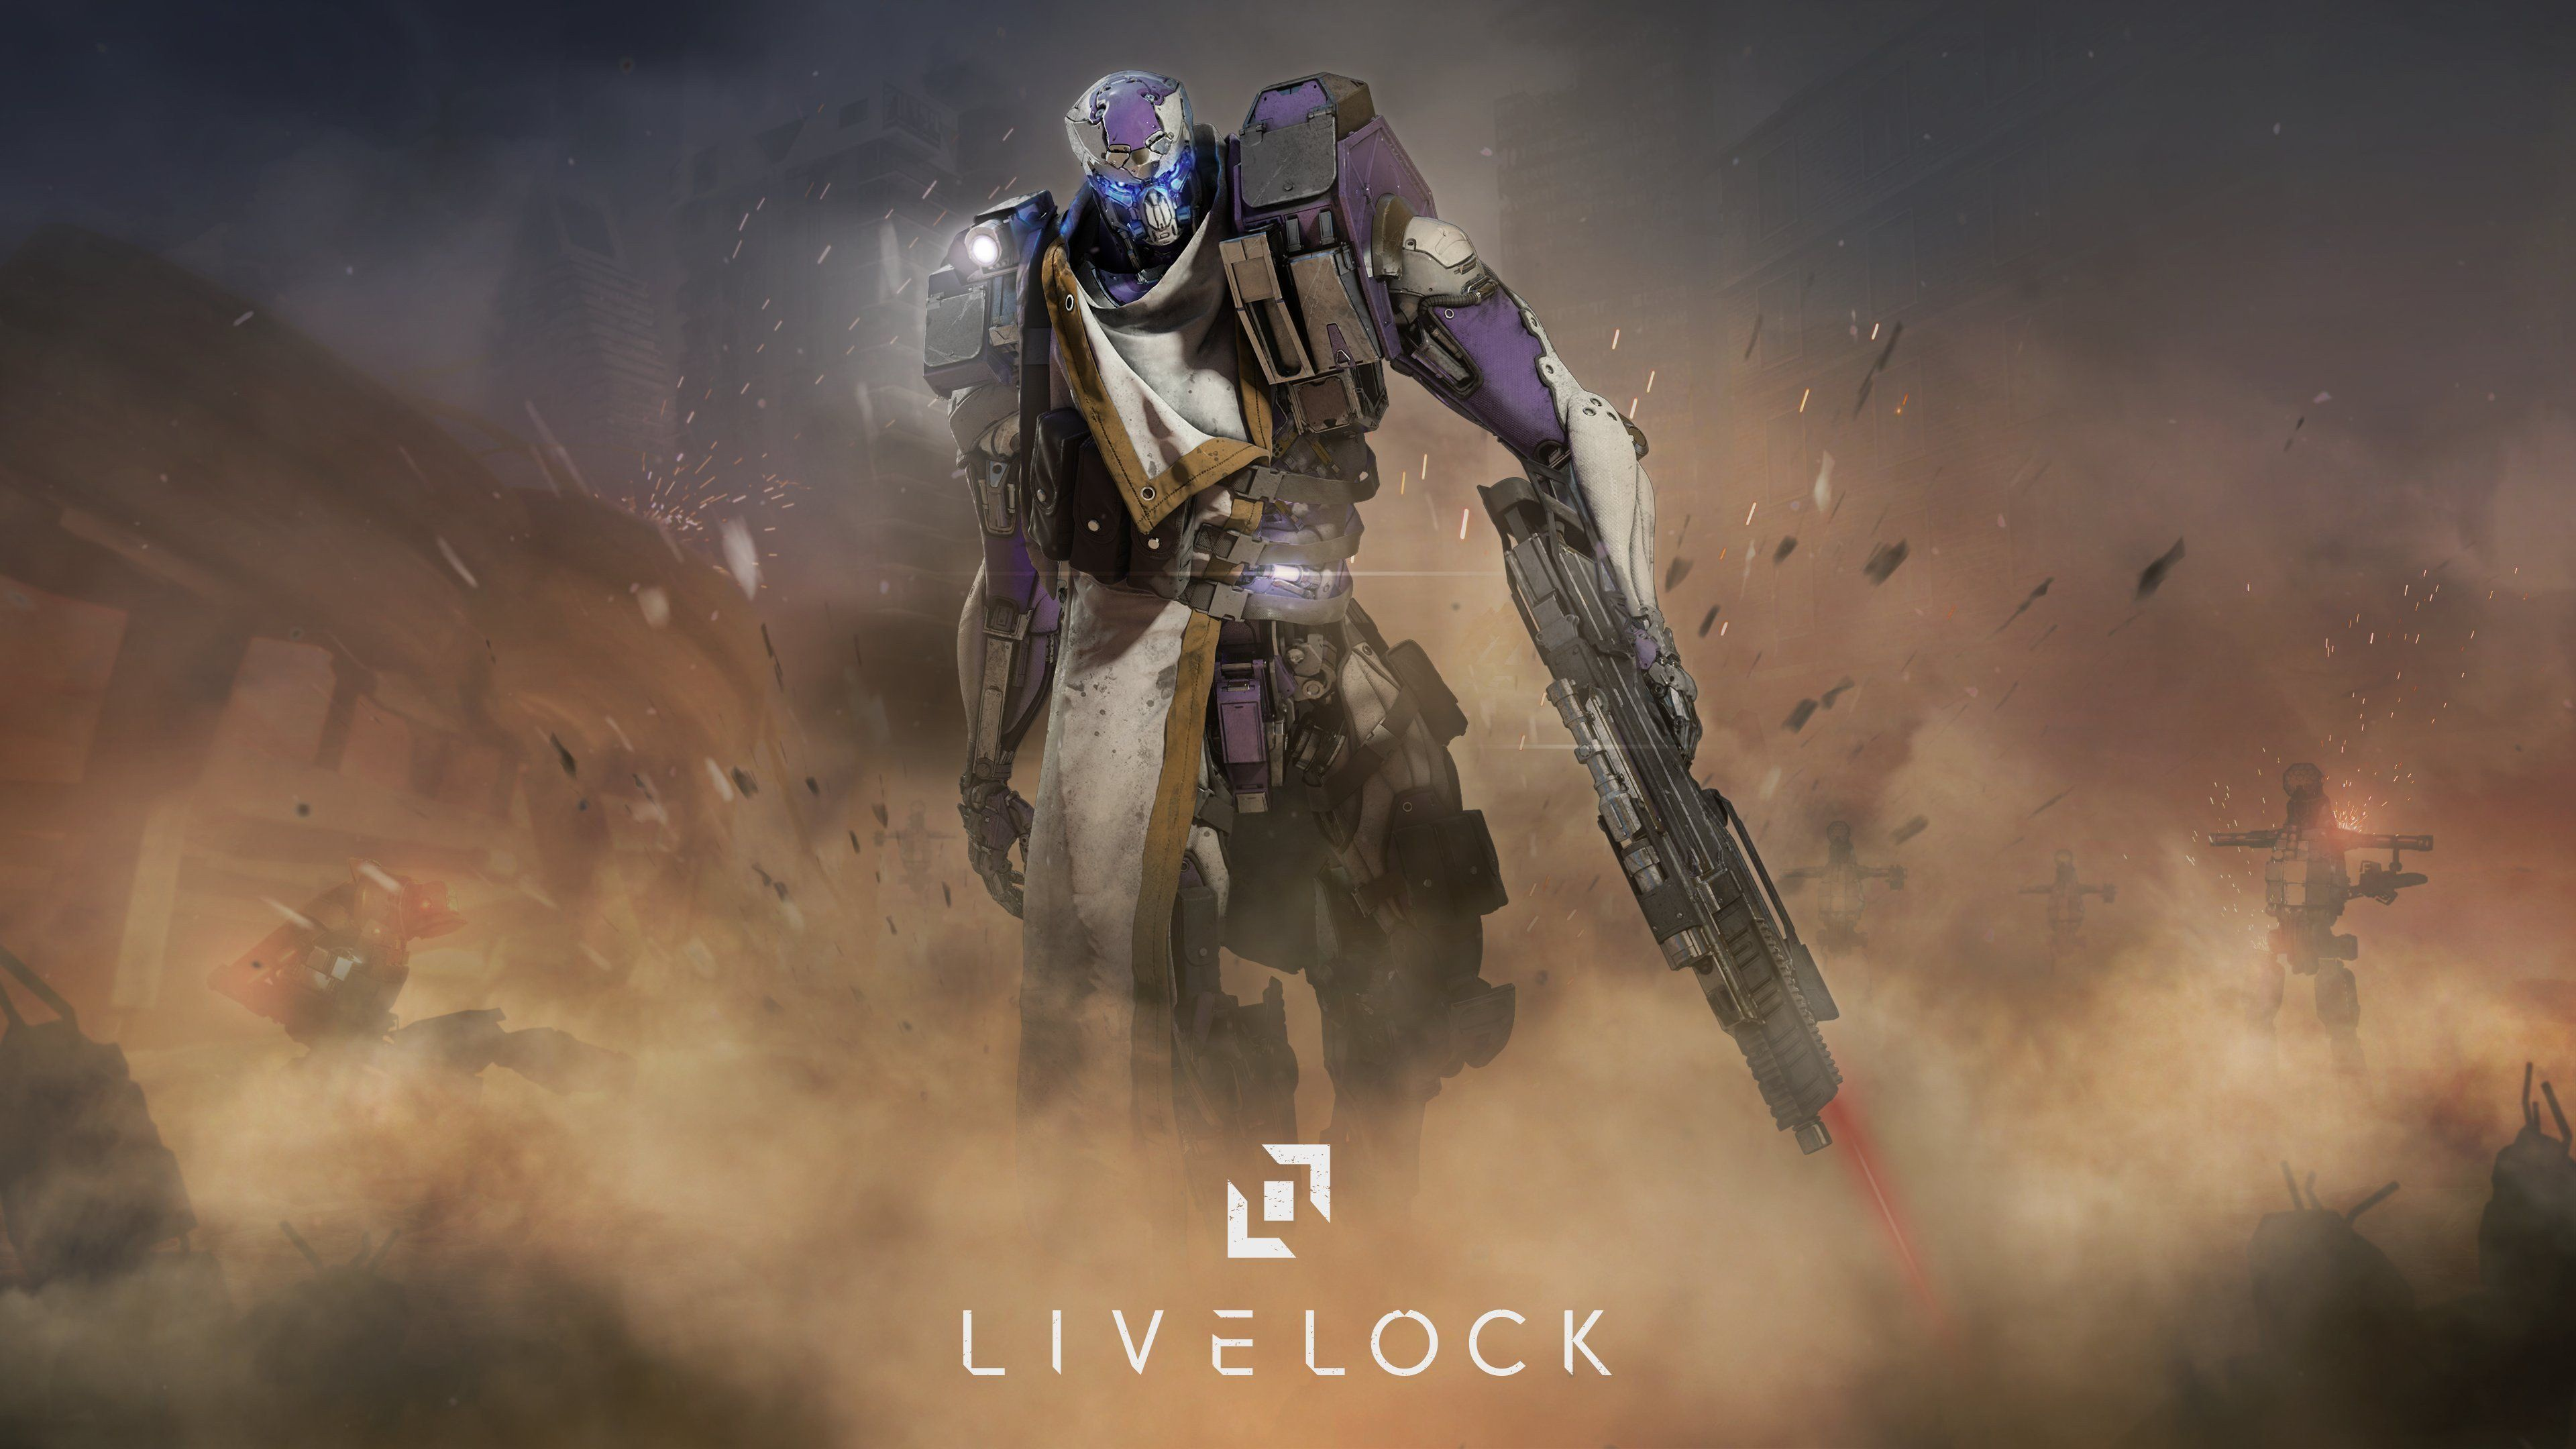 Wallpaper 4k Livelock Ps4 Game Games Wallpapers Livelock Wallpapers Ps Games Wallpapers Pembeli